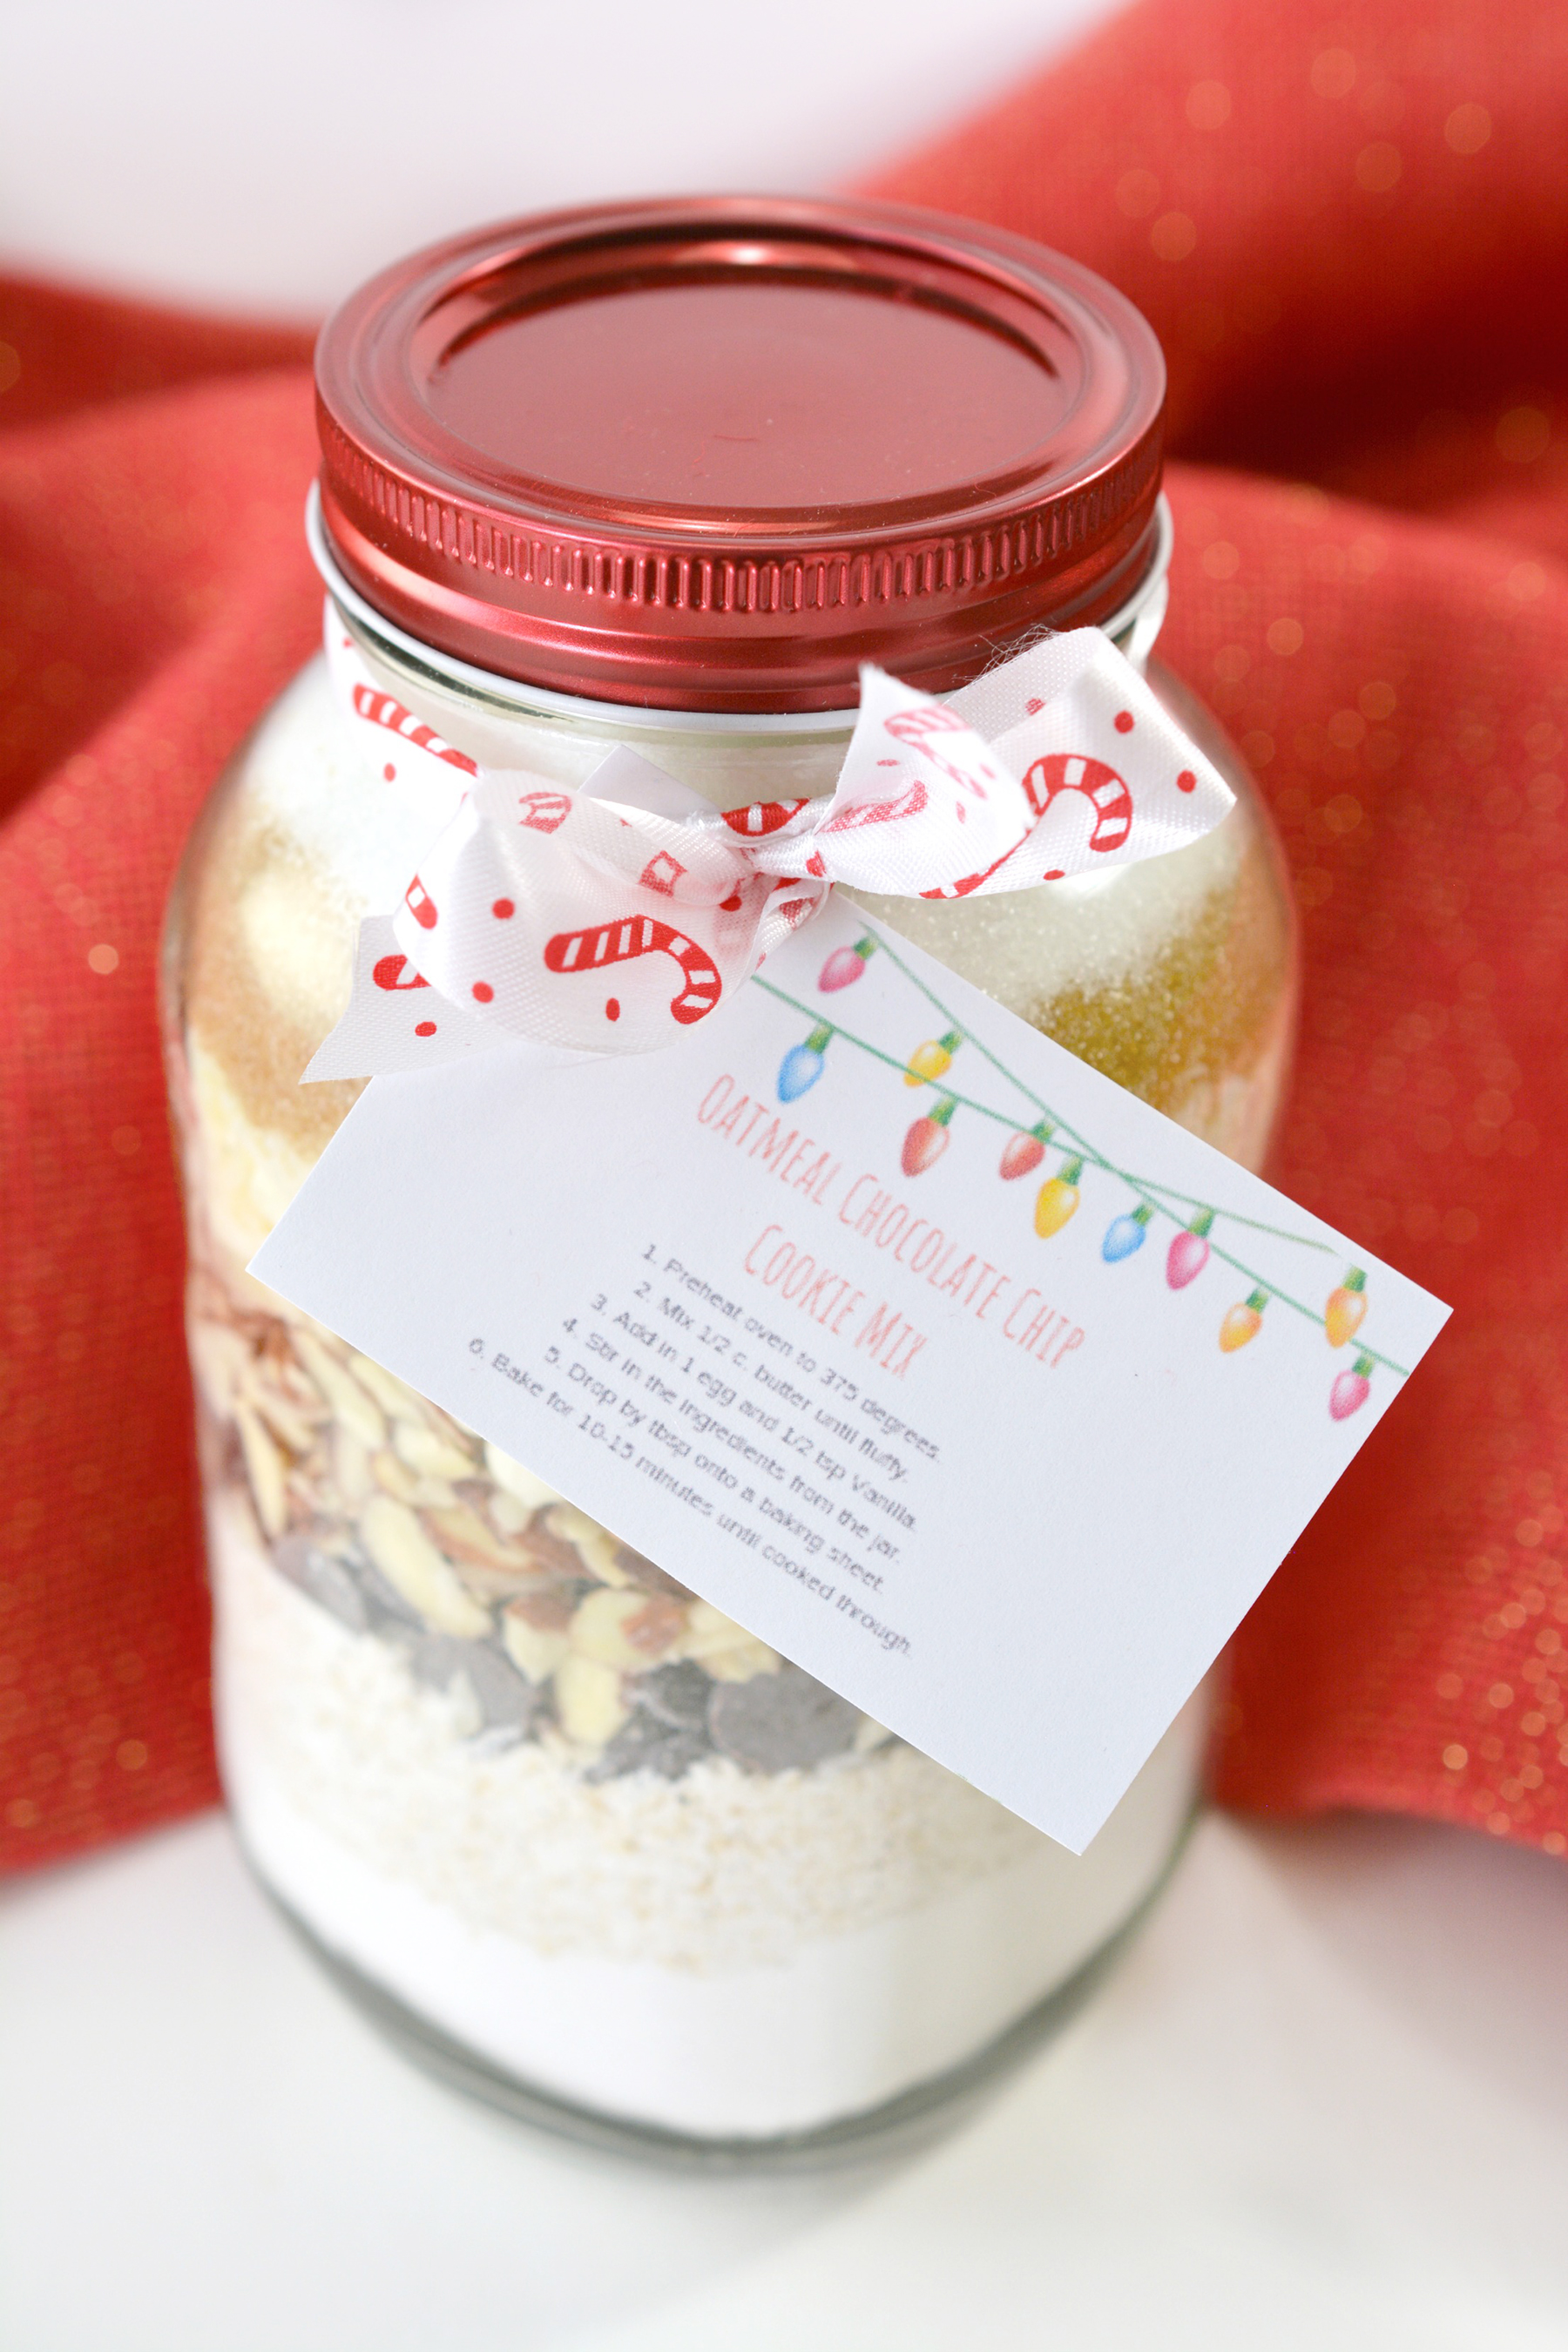 Oatmeal Chocolate Chip Cookie Mix In A Jar